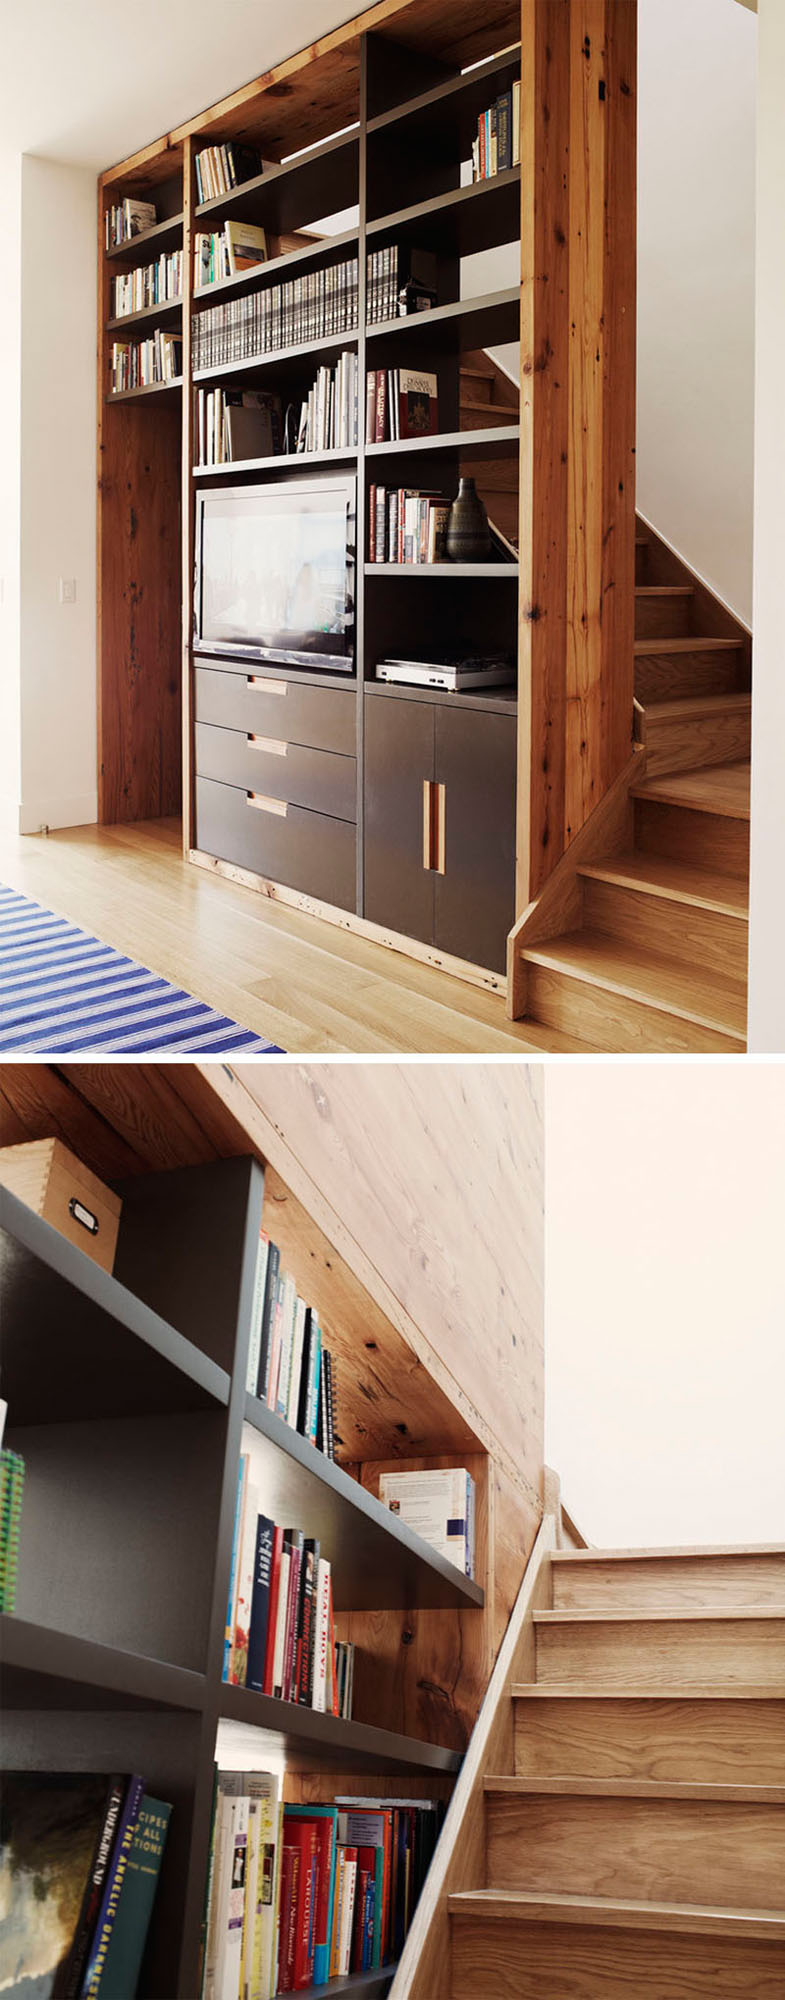 9 Stylish Staircases With Bookshelves As Safety Rails // This open bookshelf adds an element of safety to the stairs, and acts as an entertainment unit.